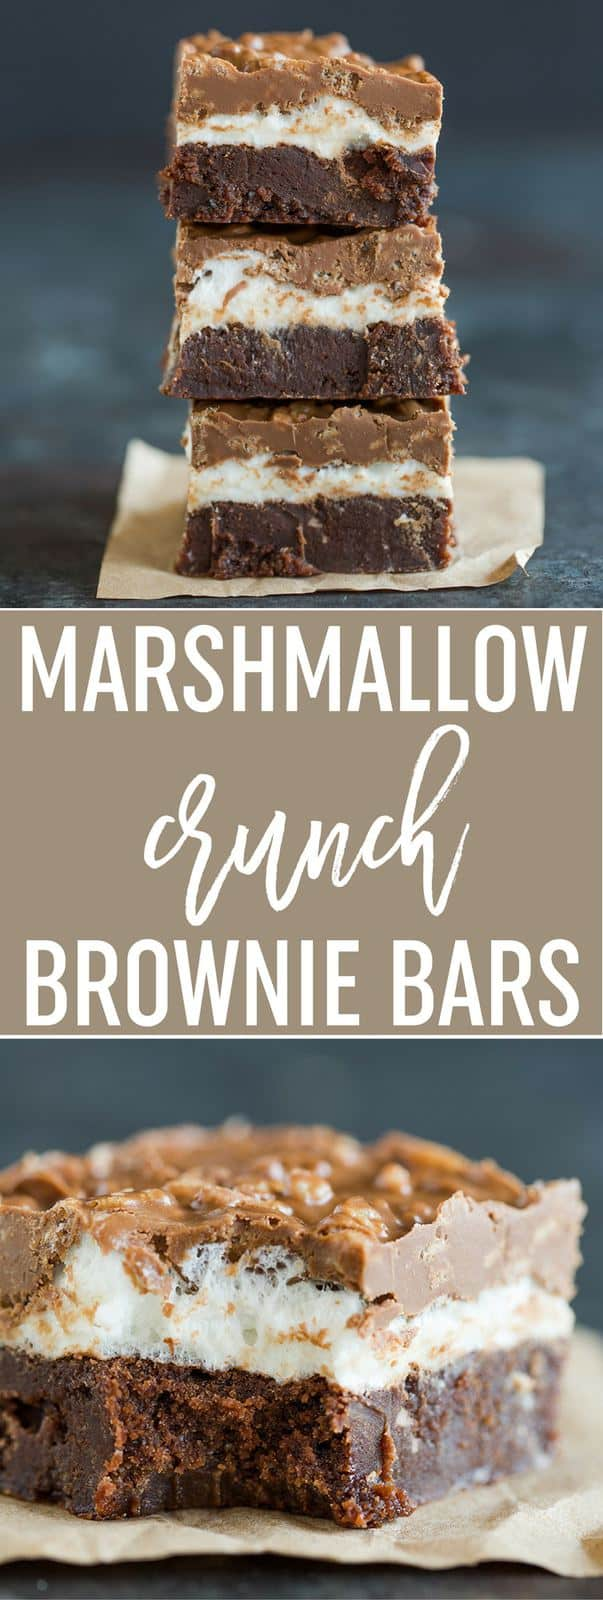 Marshmallow Crunch Brownie Bars - Super fudgy brownies topped with a marshmallow layer and a chocolate, peanut butter and Rice Krispies mixture. A huge crowd favorite!